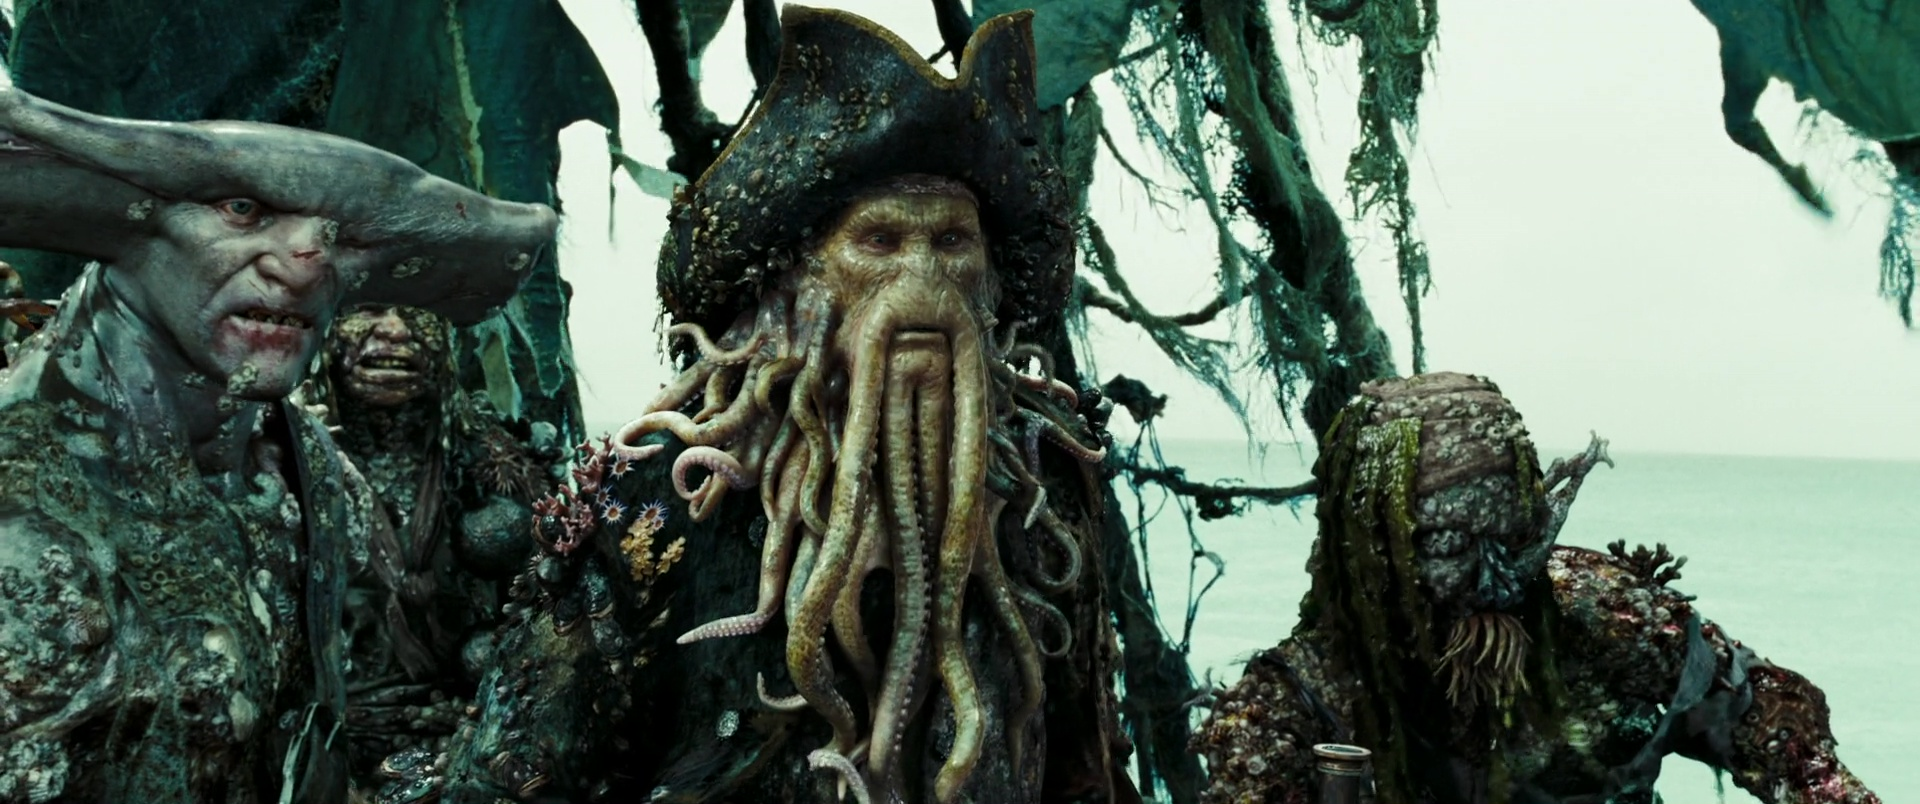 davy jones personnage character pirate caraibes secret coffre maudit dead man chest disney